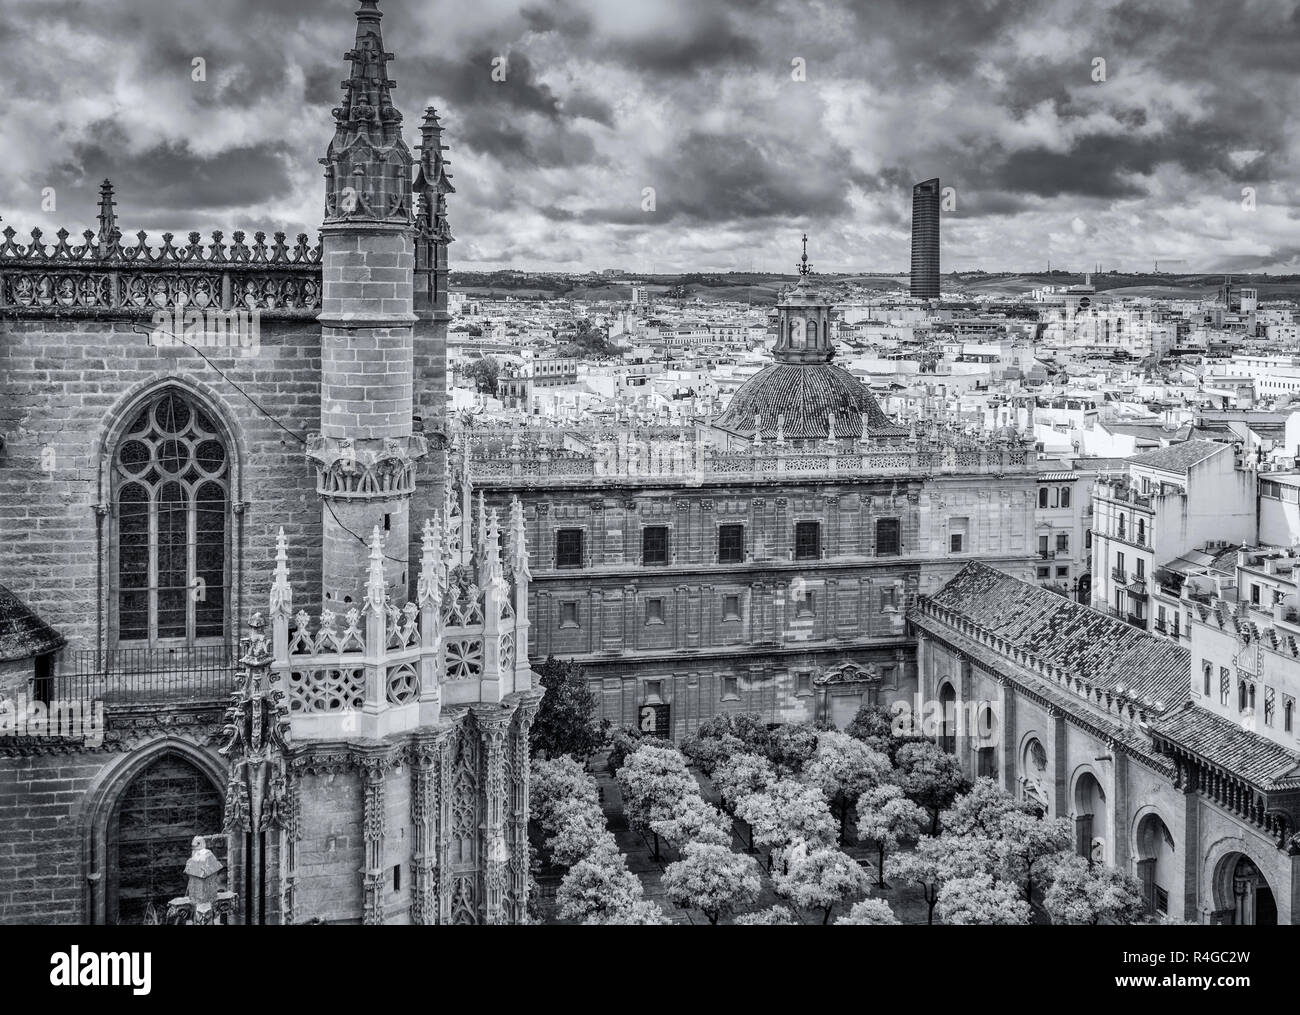 Seville cathedral  and surrounding section of Seville city, viewed from the Giralda bell tower, Seville, Andalucia, Spain Stock Photo